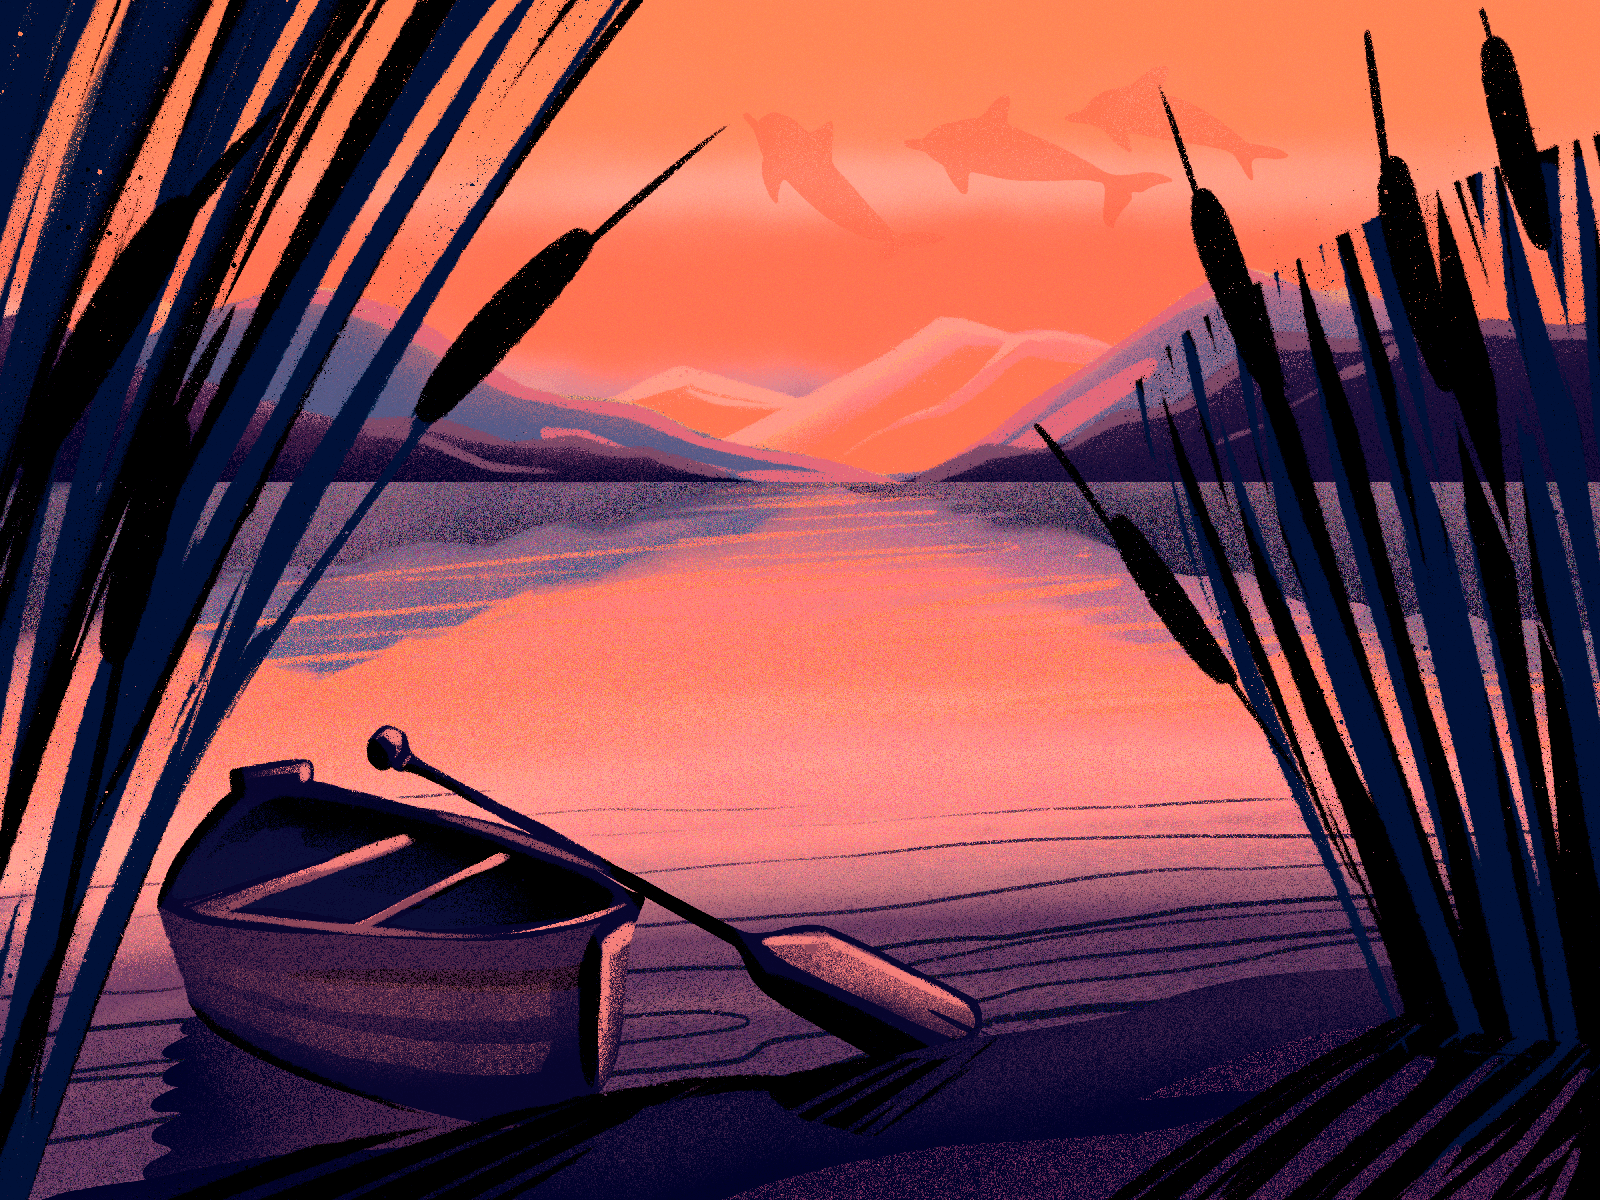 sunset river illustration